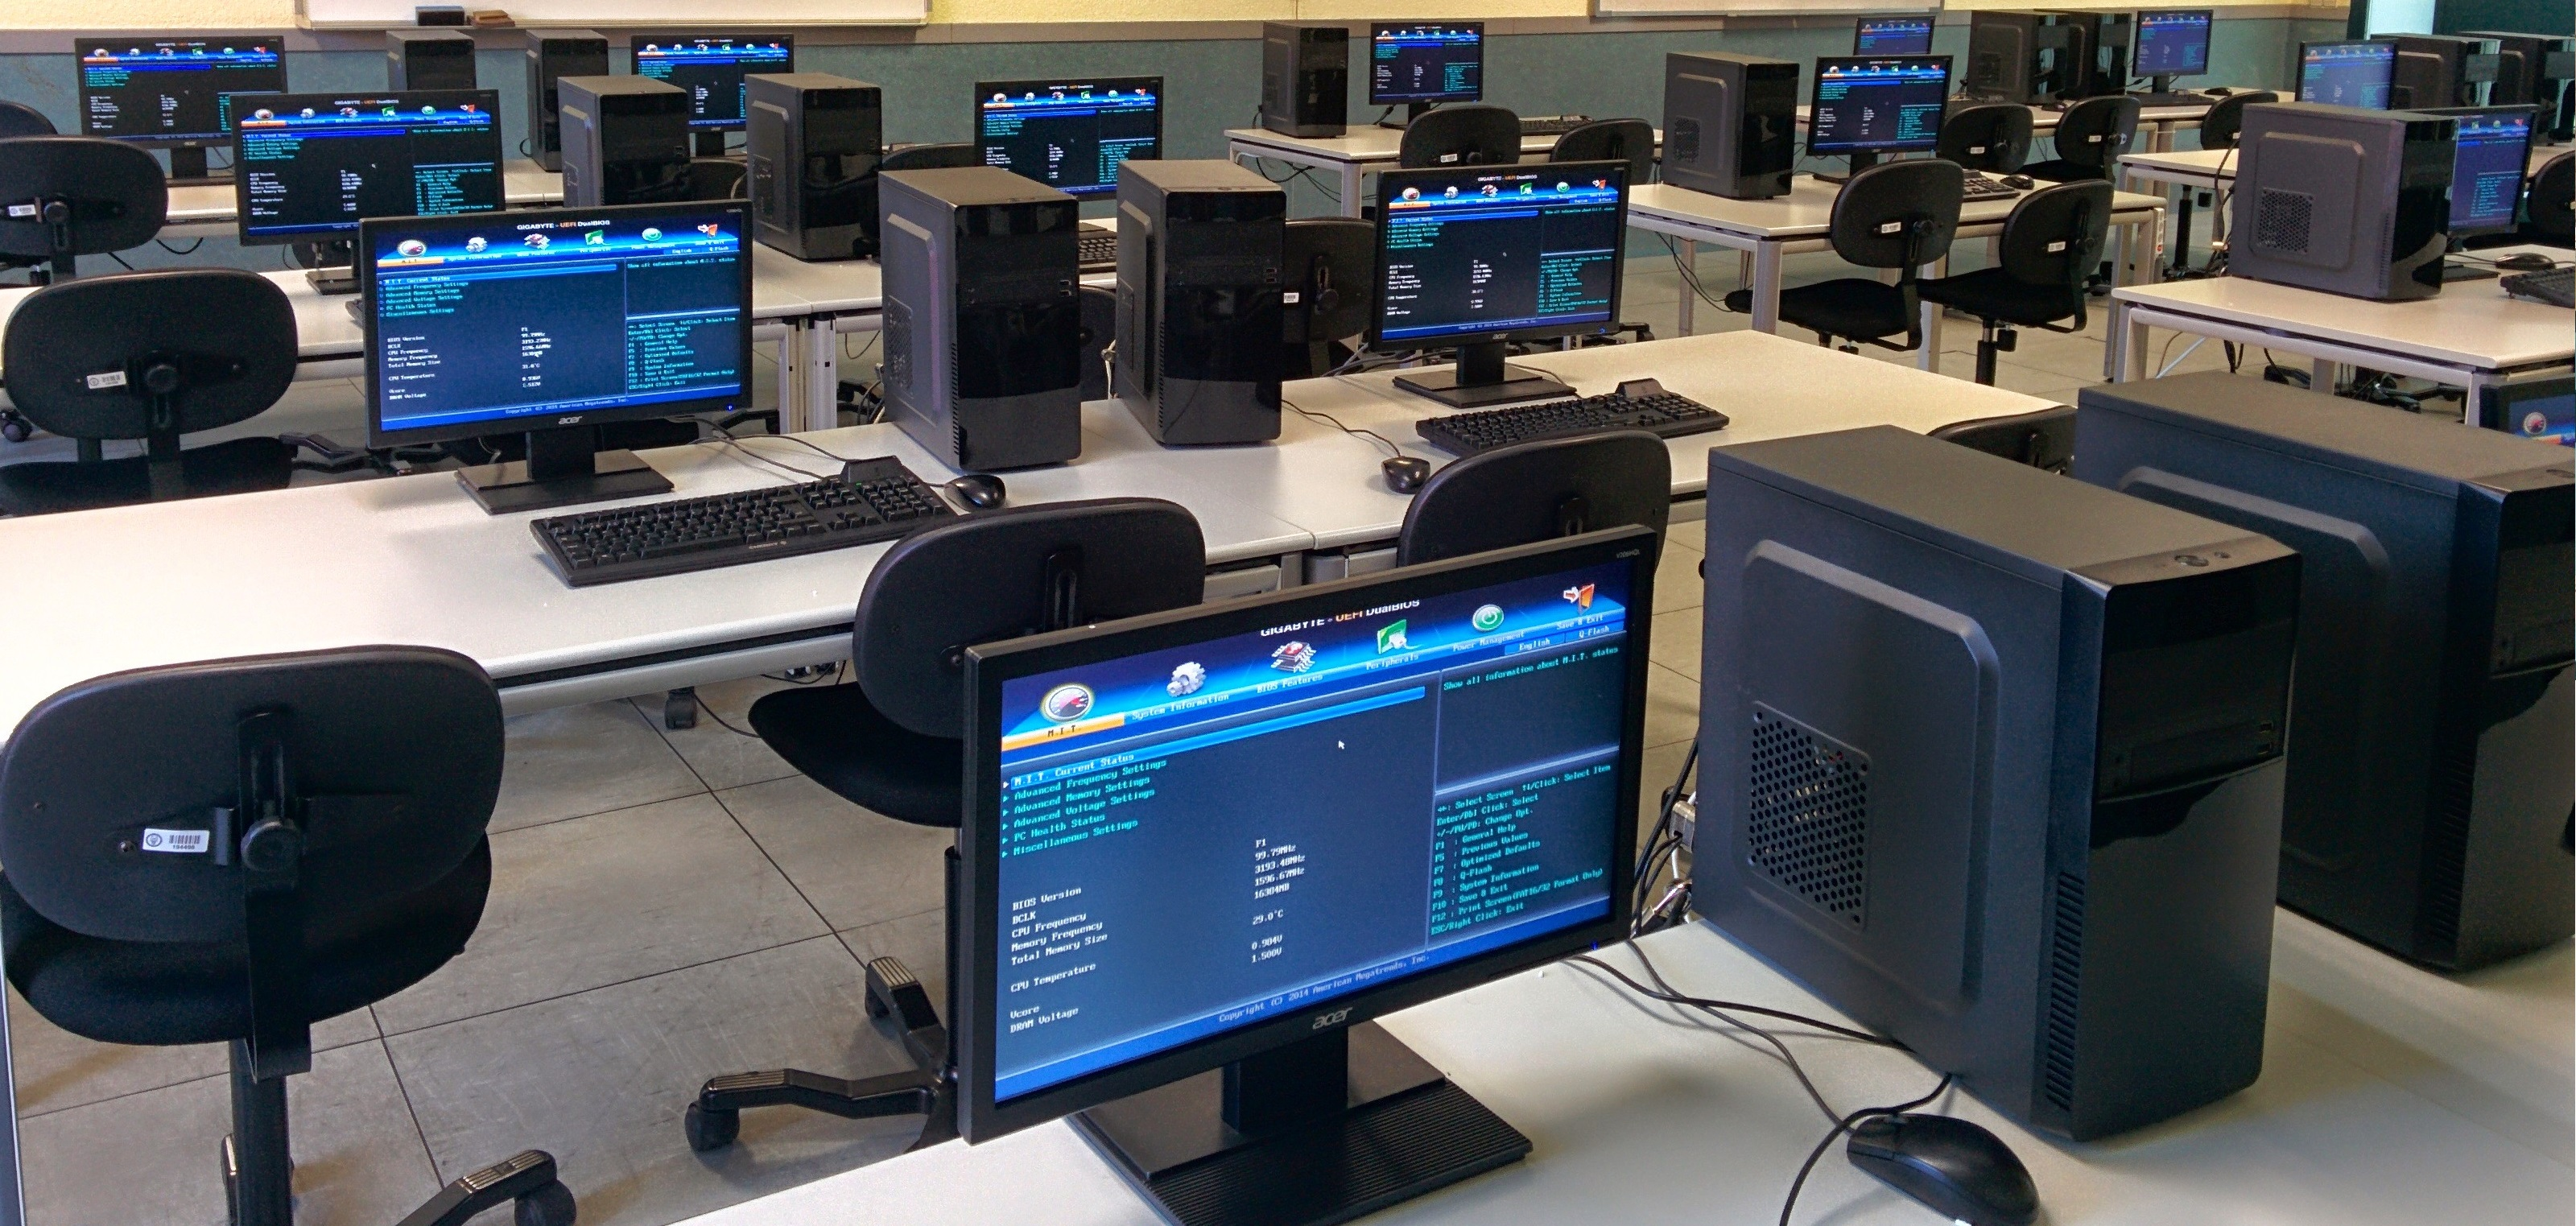 Image of a computer laboratory